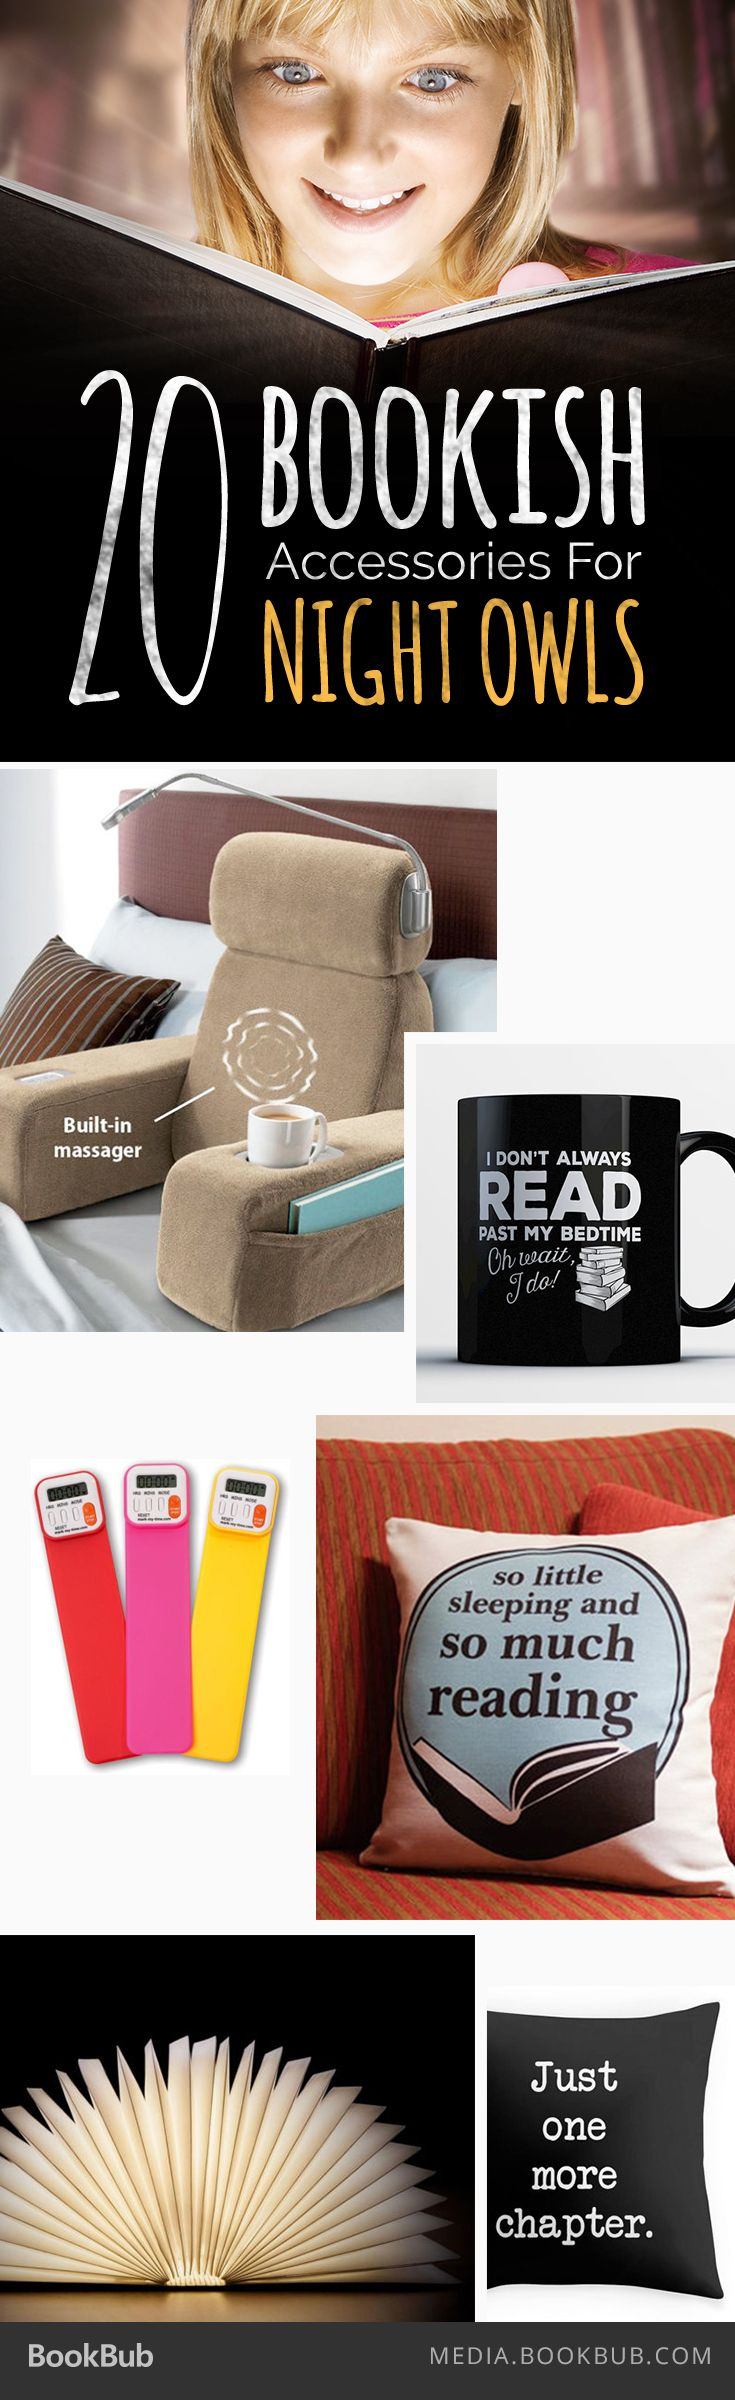 20 Bookish Accessories For Night Owls